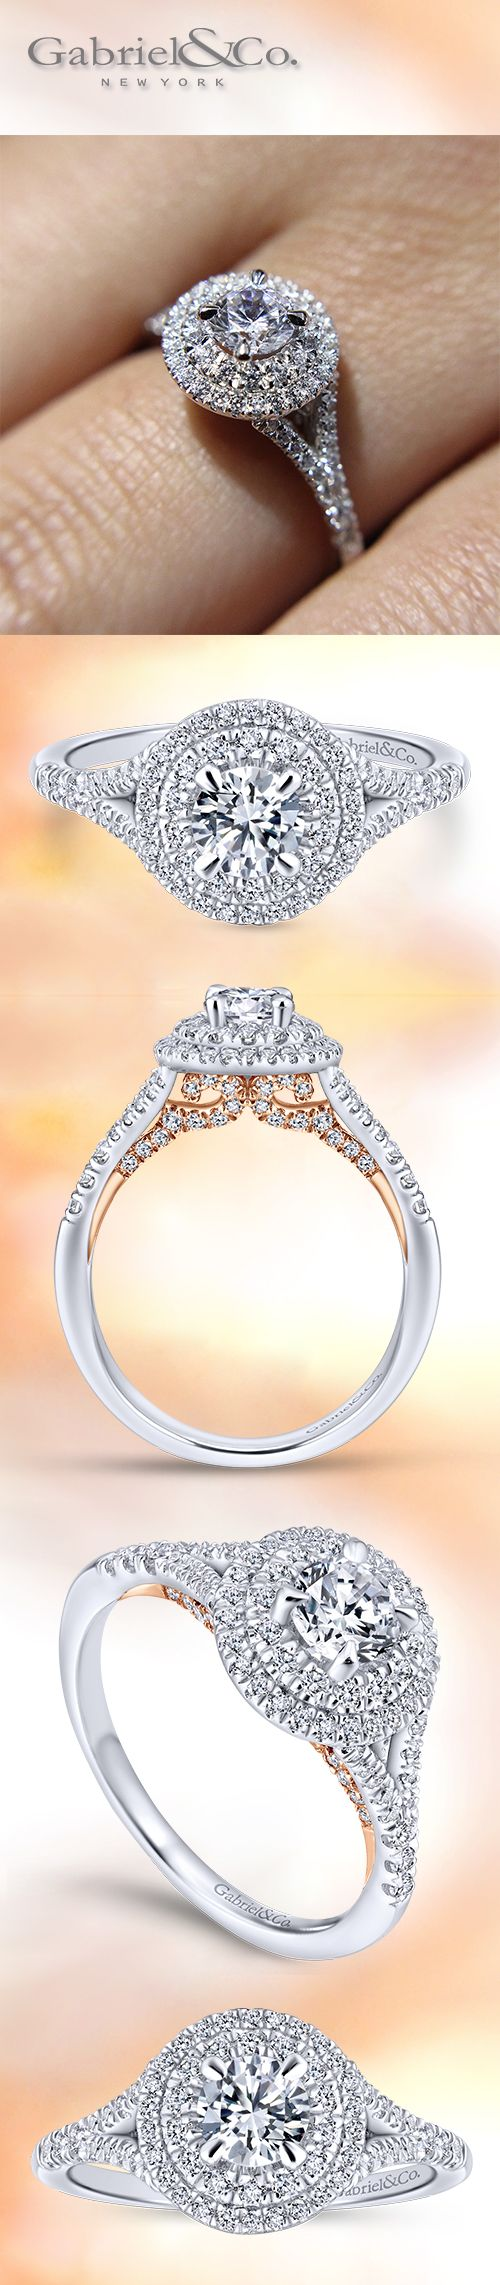 Gabriel & Co - Voted #1 Most Preferred Bridal Brand. A touch of rose gold on this 14k Double Halo Round-Cut Diamond Engagement Ring from the popular Blush collection. Style: ER913020R0T44JJ